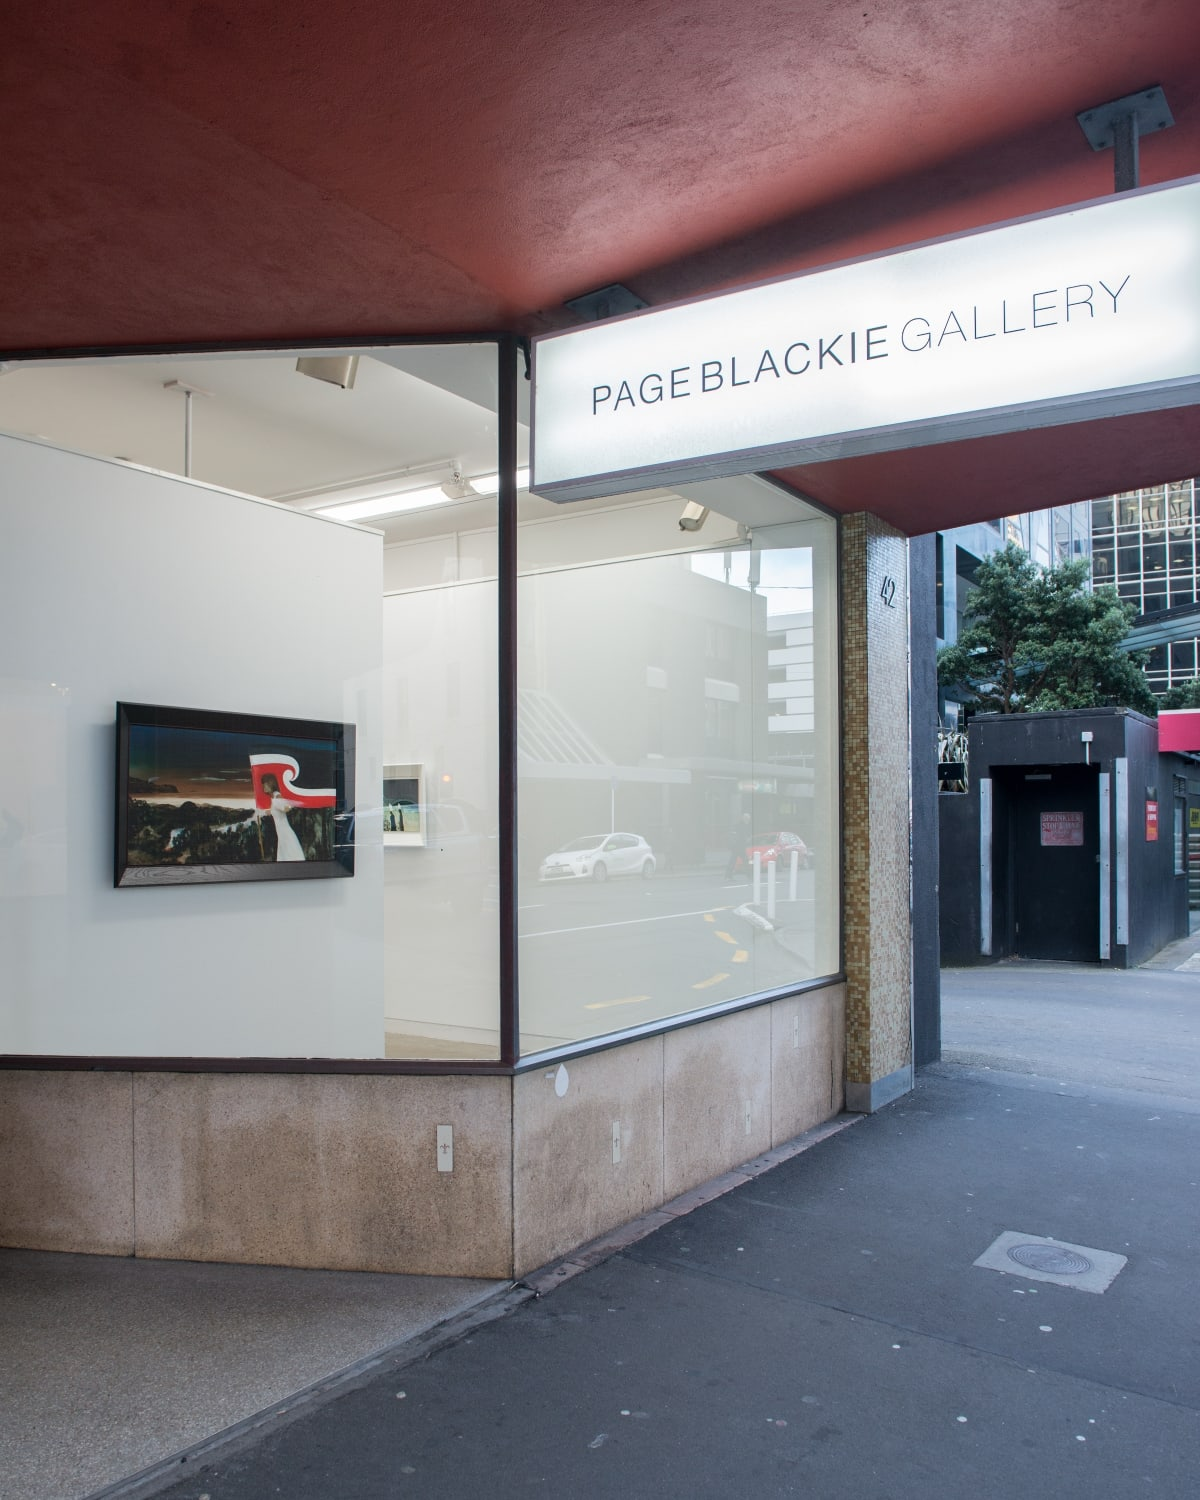 Gallery closed for ANZAC Day